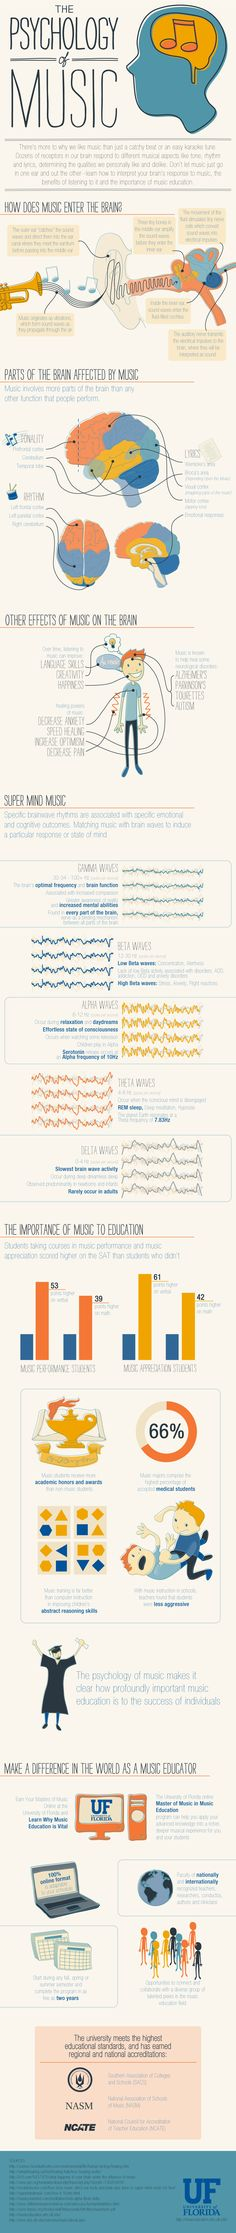 The Psychology Of Music [Pic]